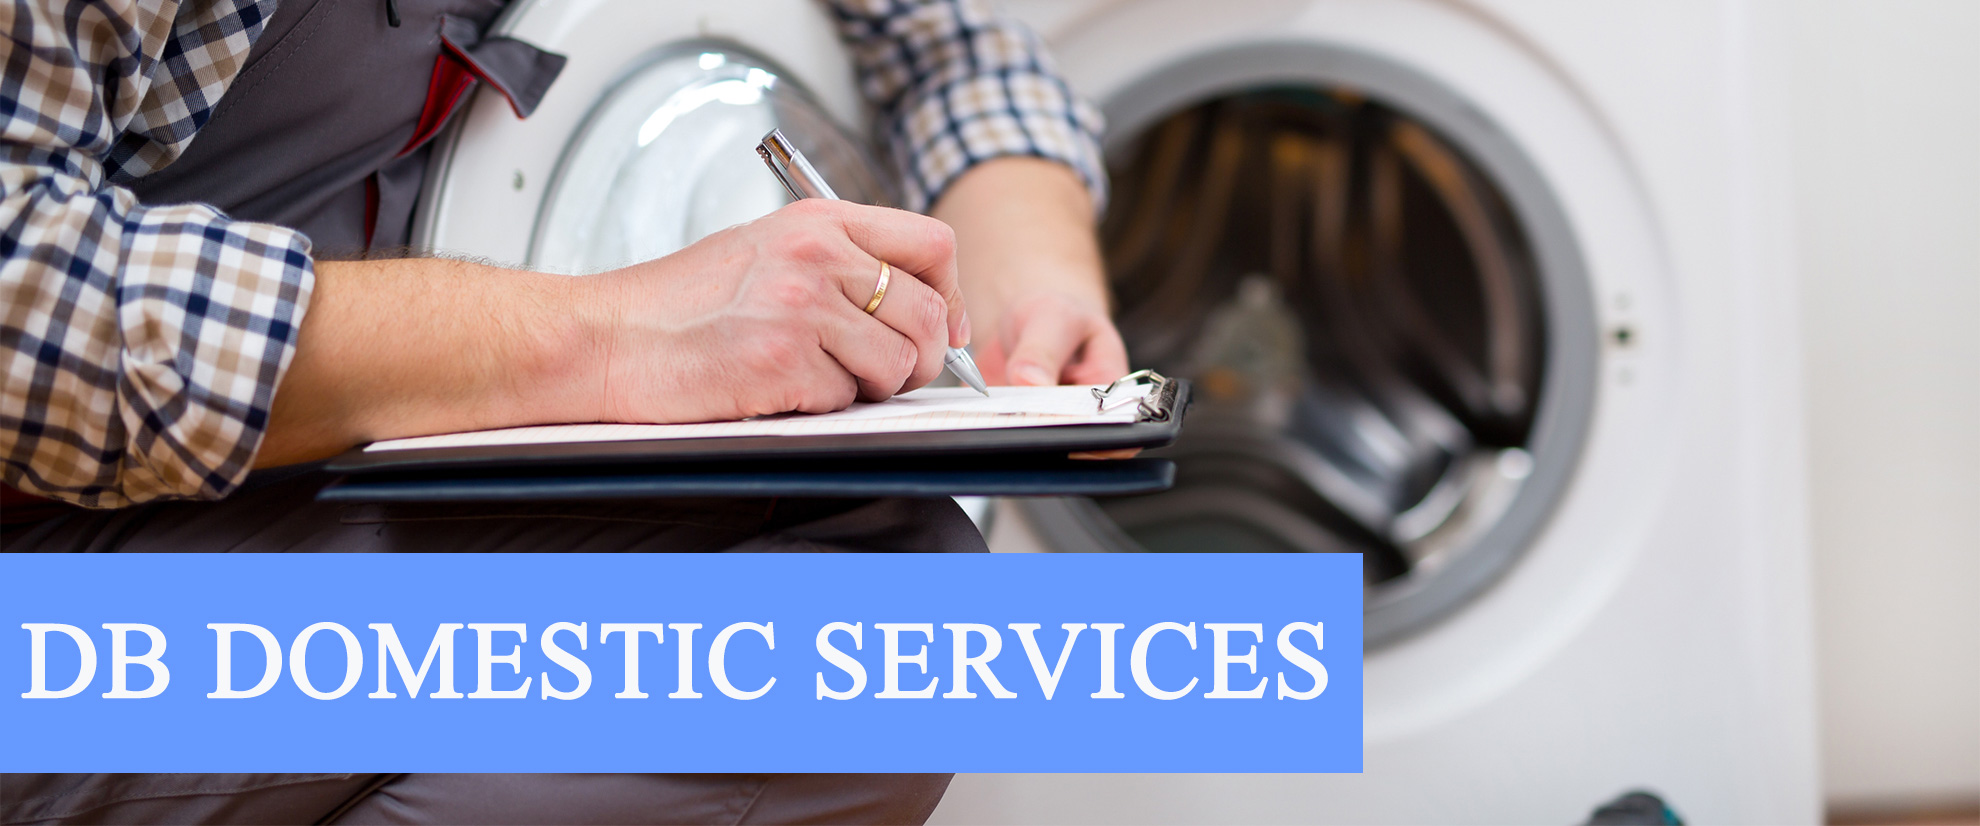 DB Domestic Service